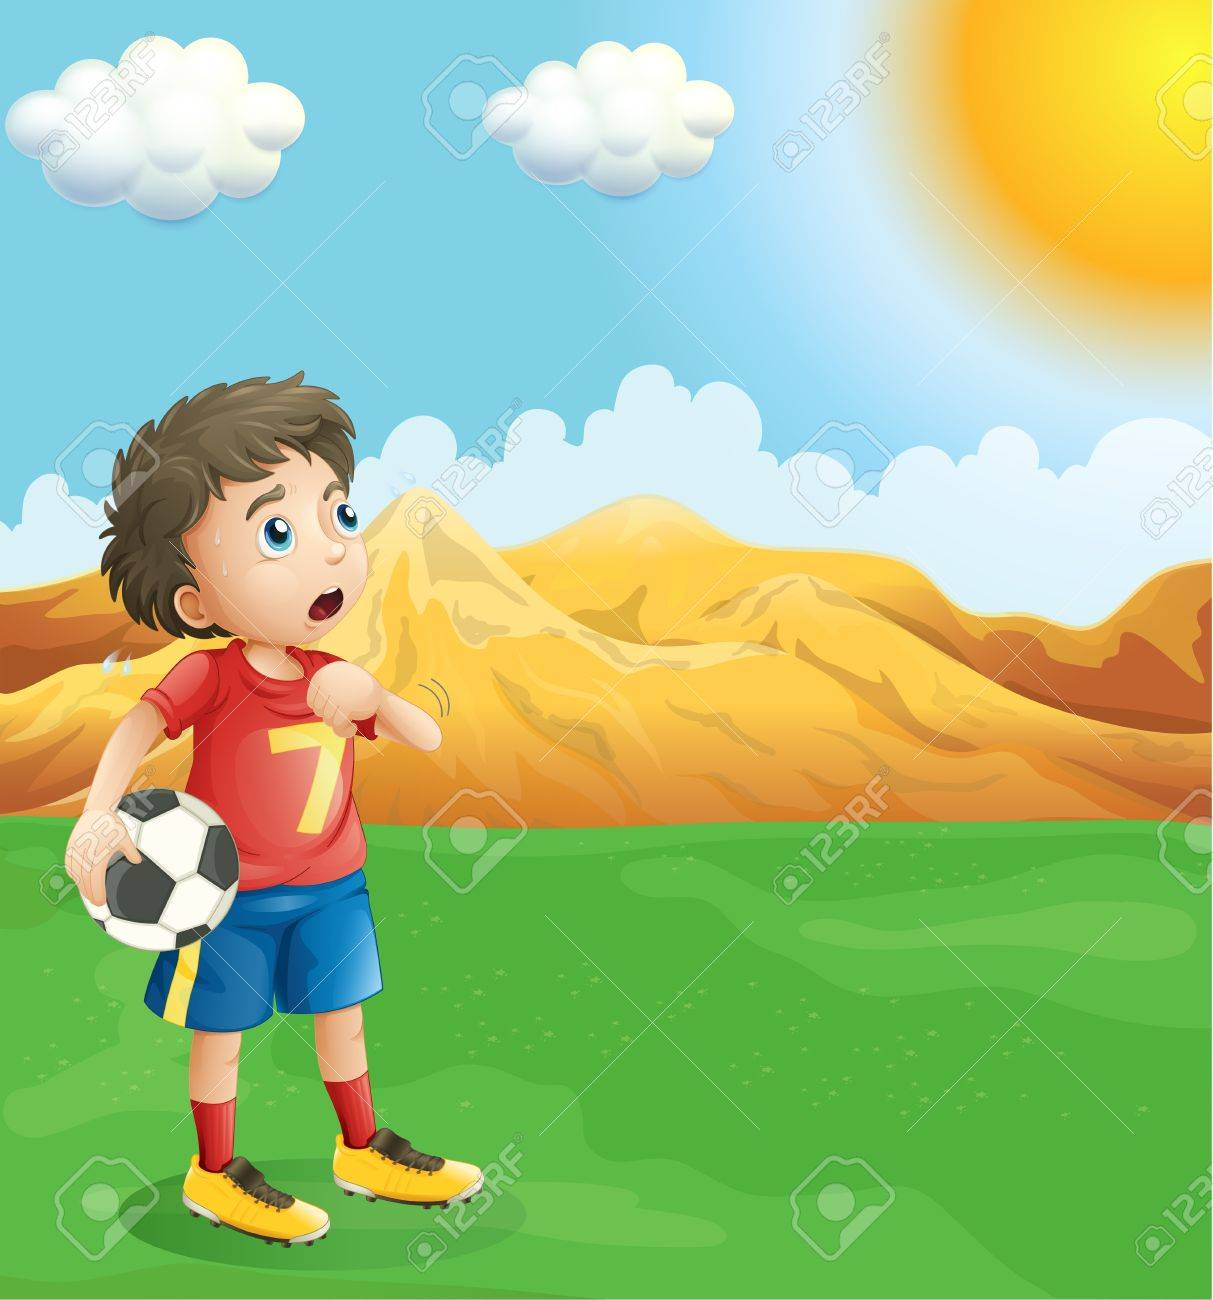 Illustration of a boy holding a soccer ball sweating Stock Vector - 19717653